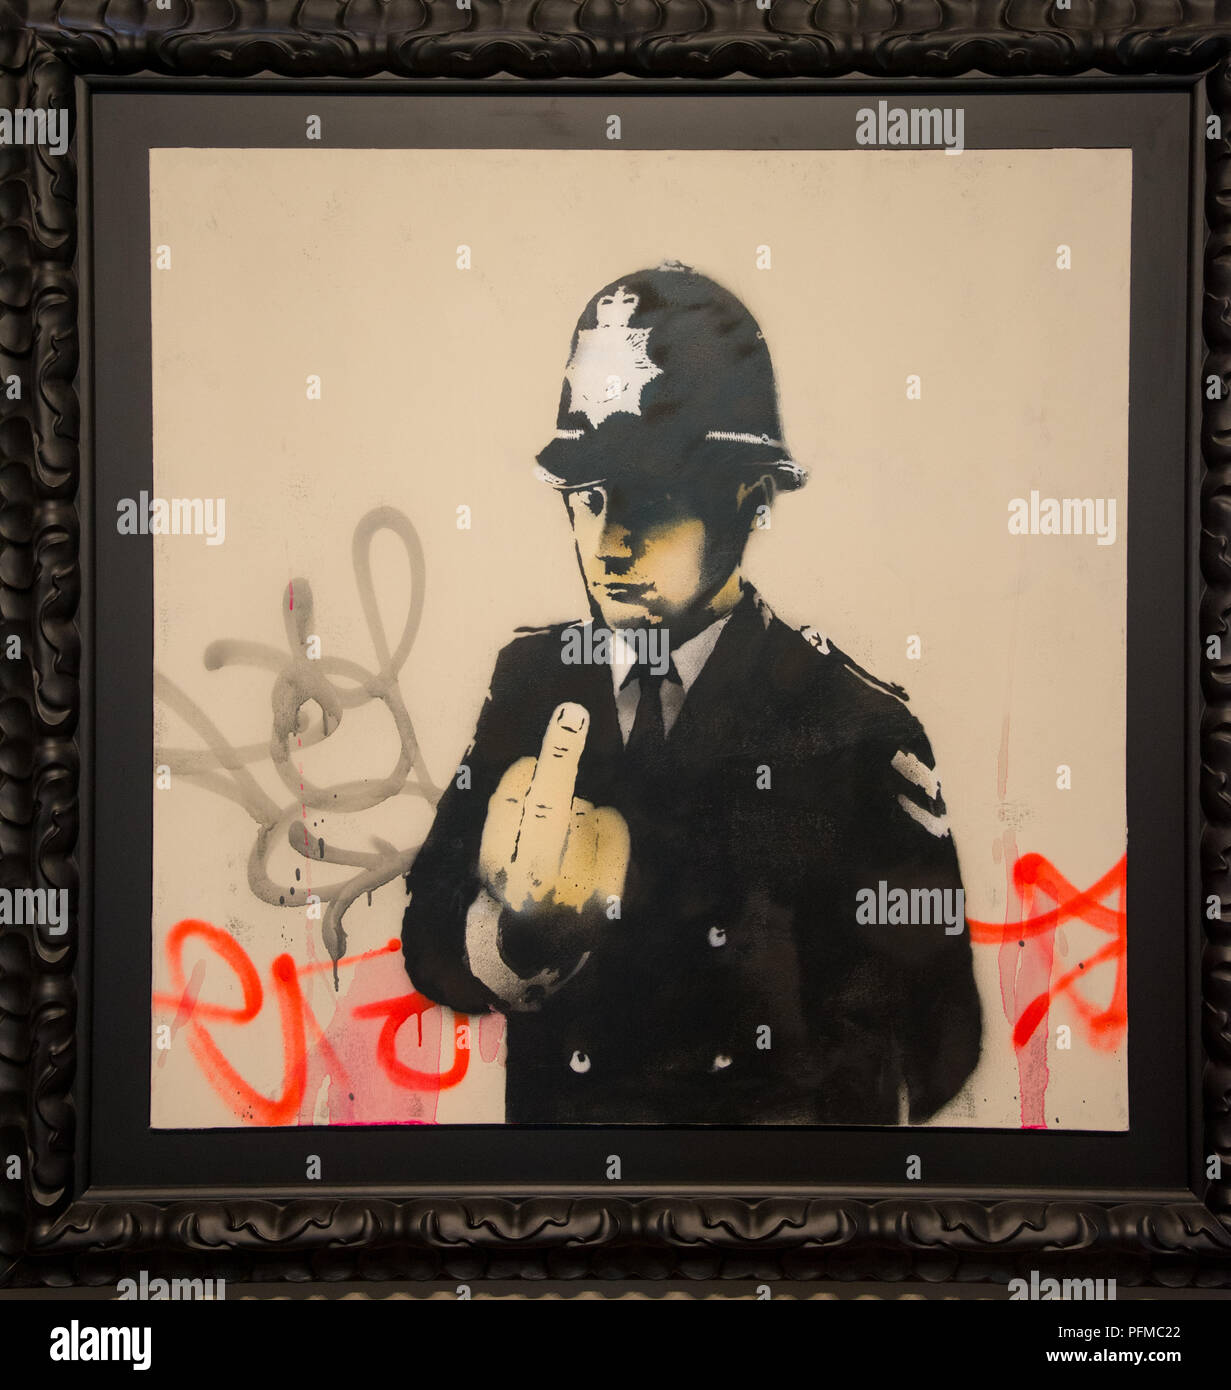 Banksy Graffiti street art Rude Copper